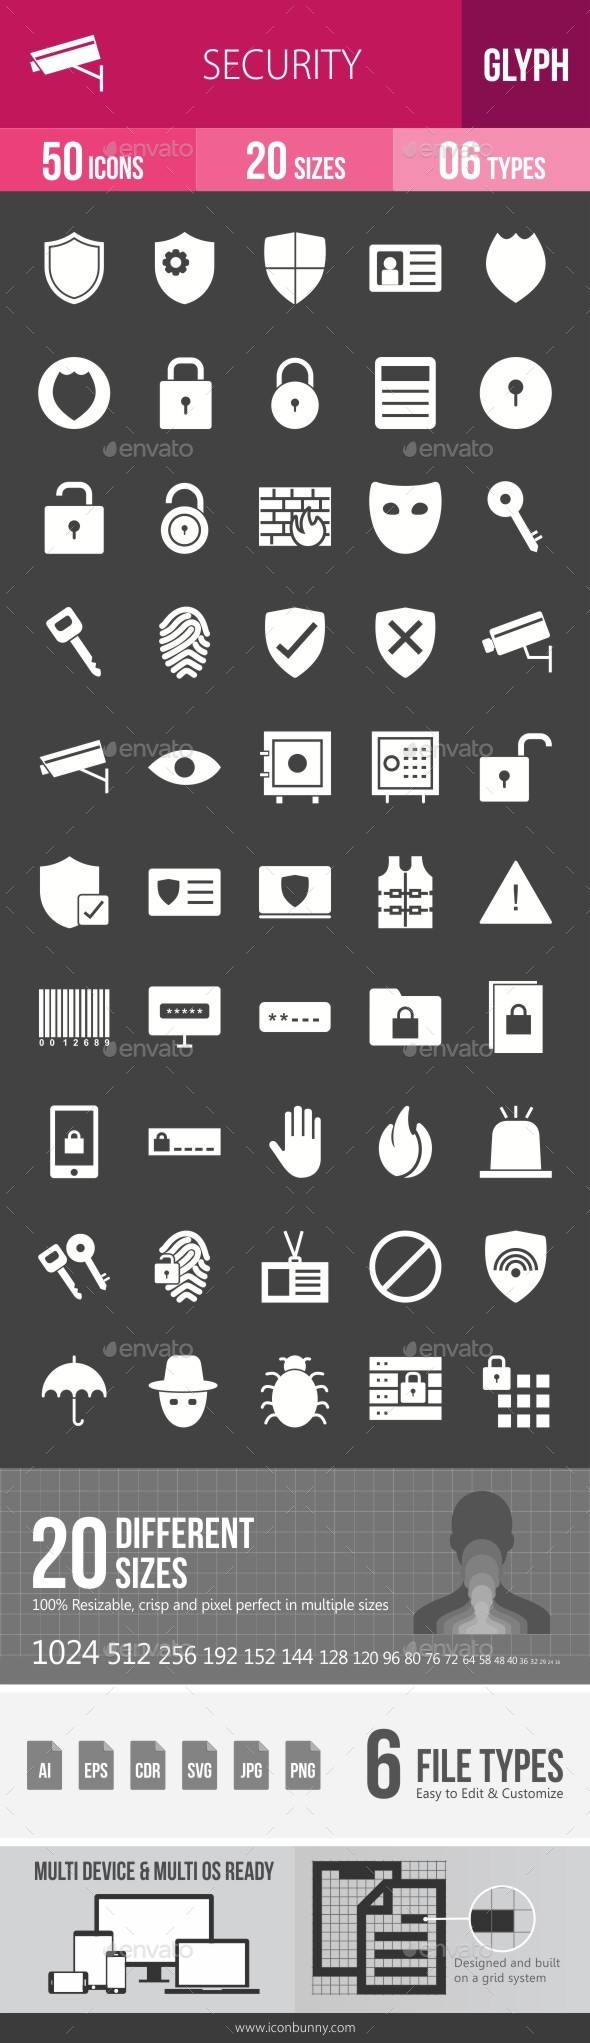 Security Glyph Inverted Icons - Icons